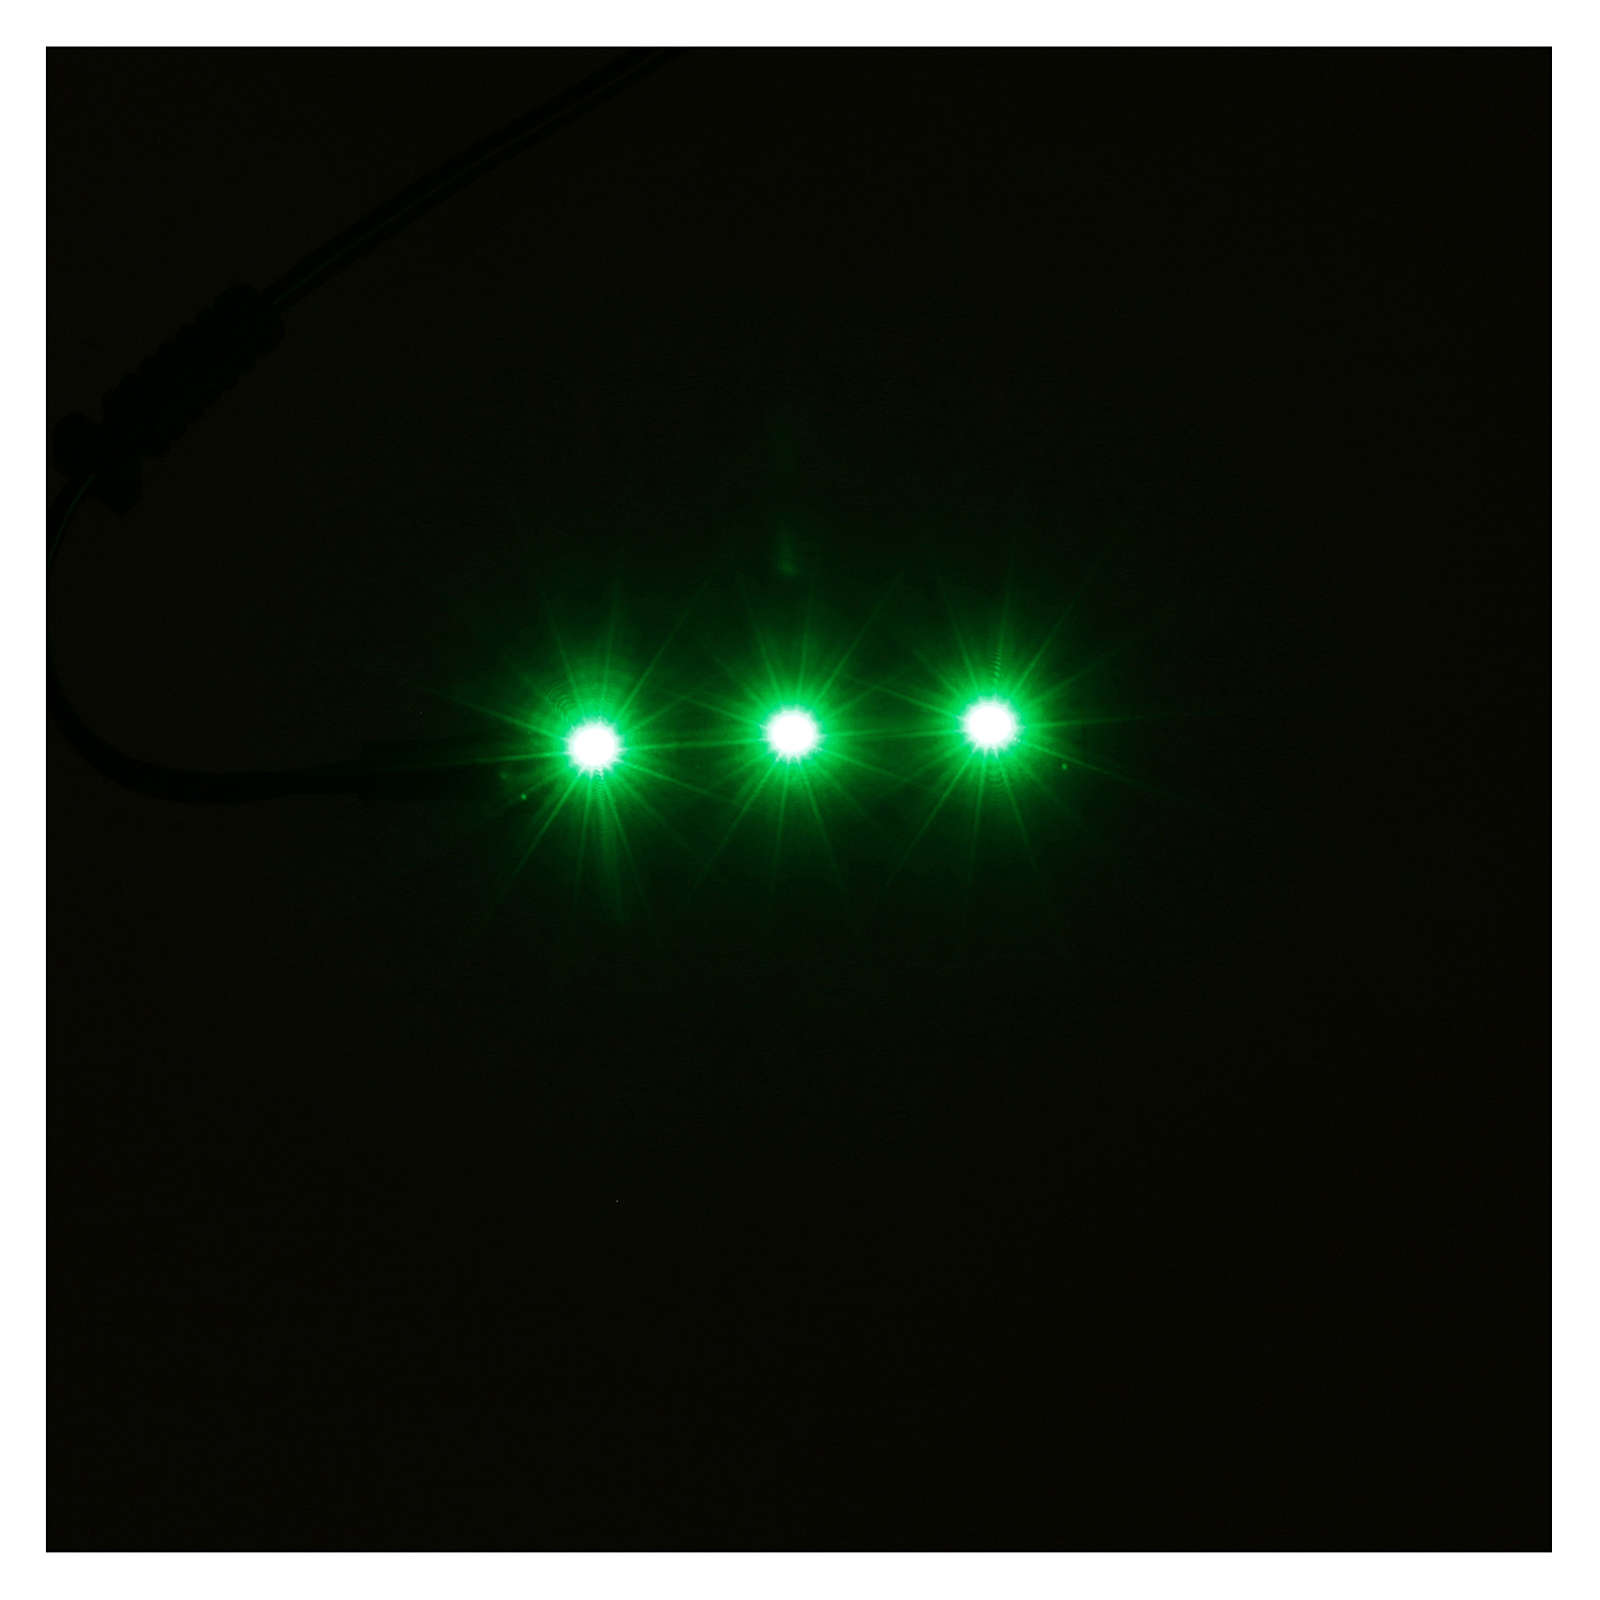 Led a strisce 3 led cm 0,8x4 cm verde per Frisalight 4